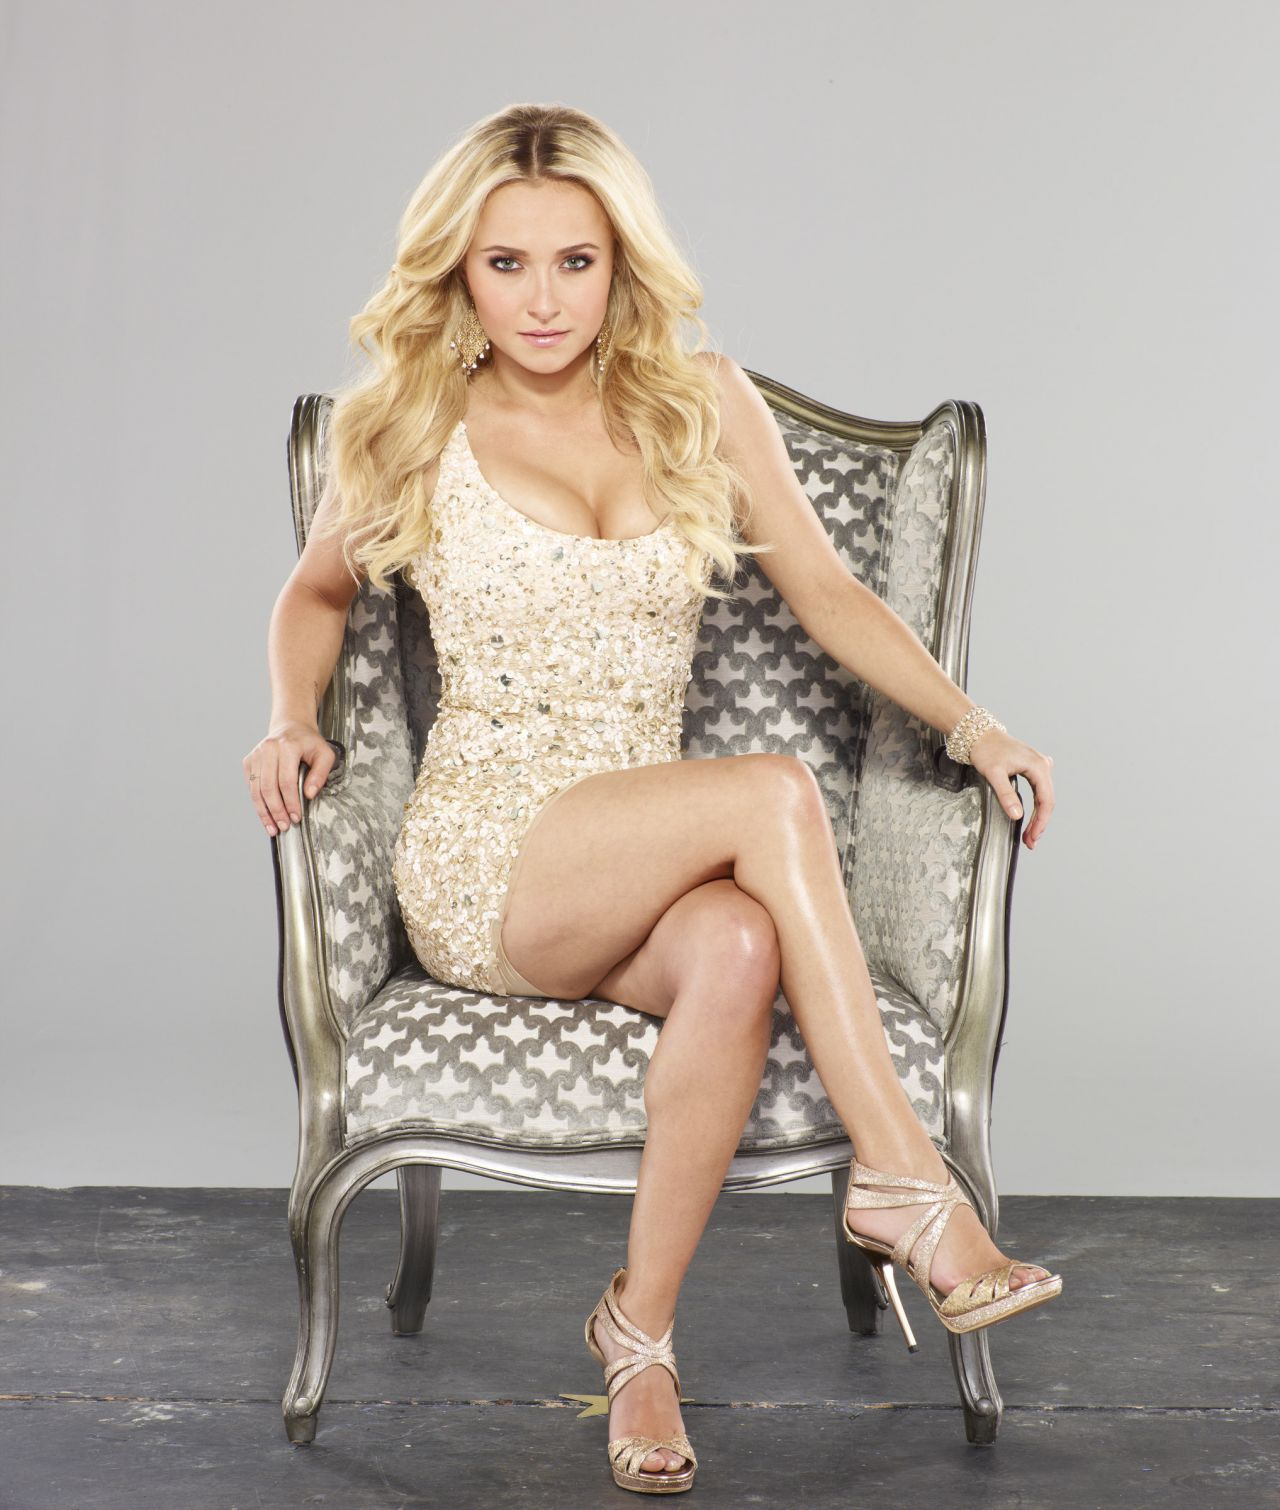 Hayden Panettiere - Nashville Promo Photos (+102)